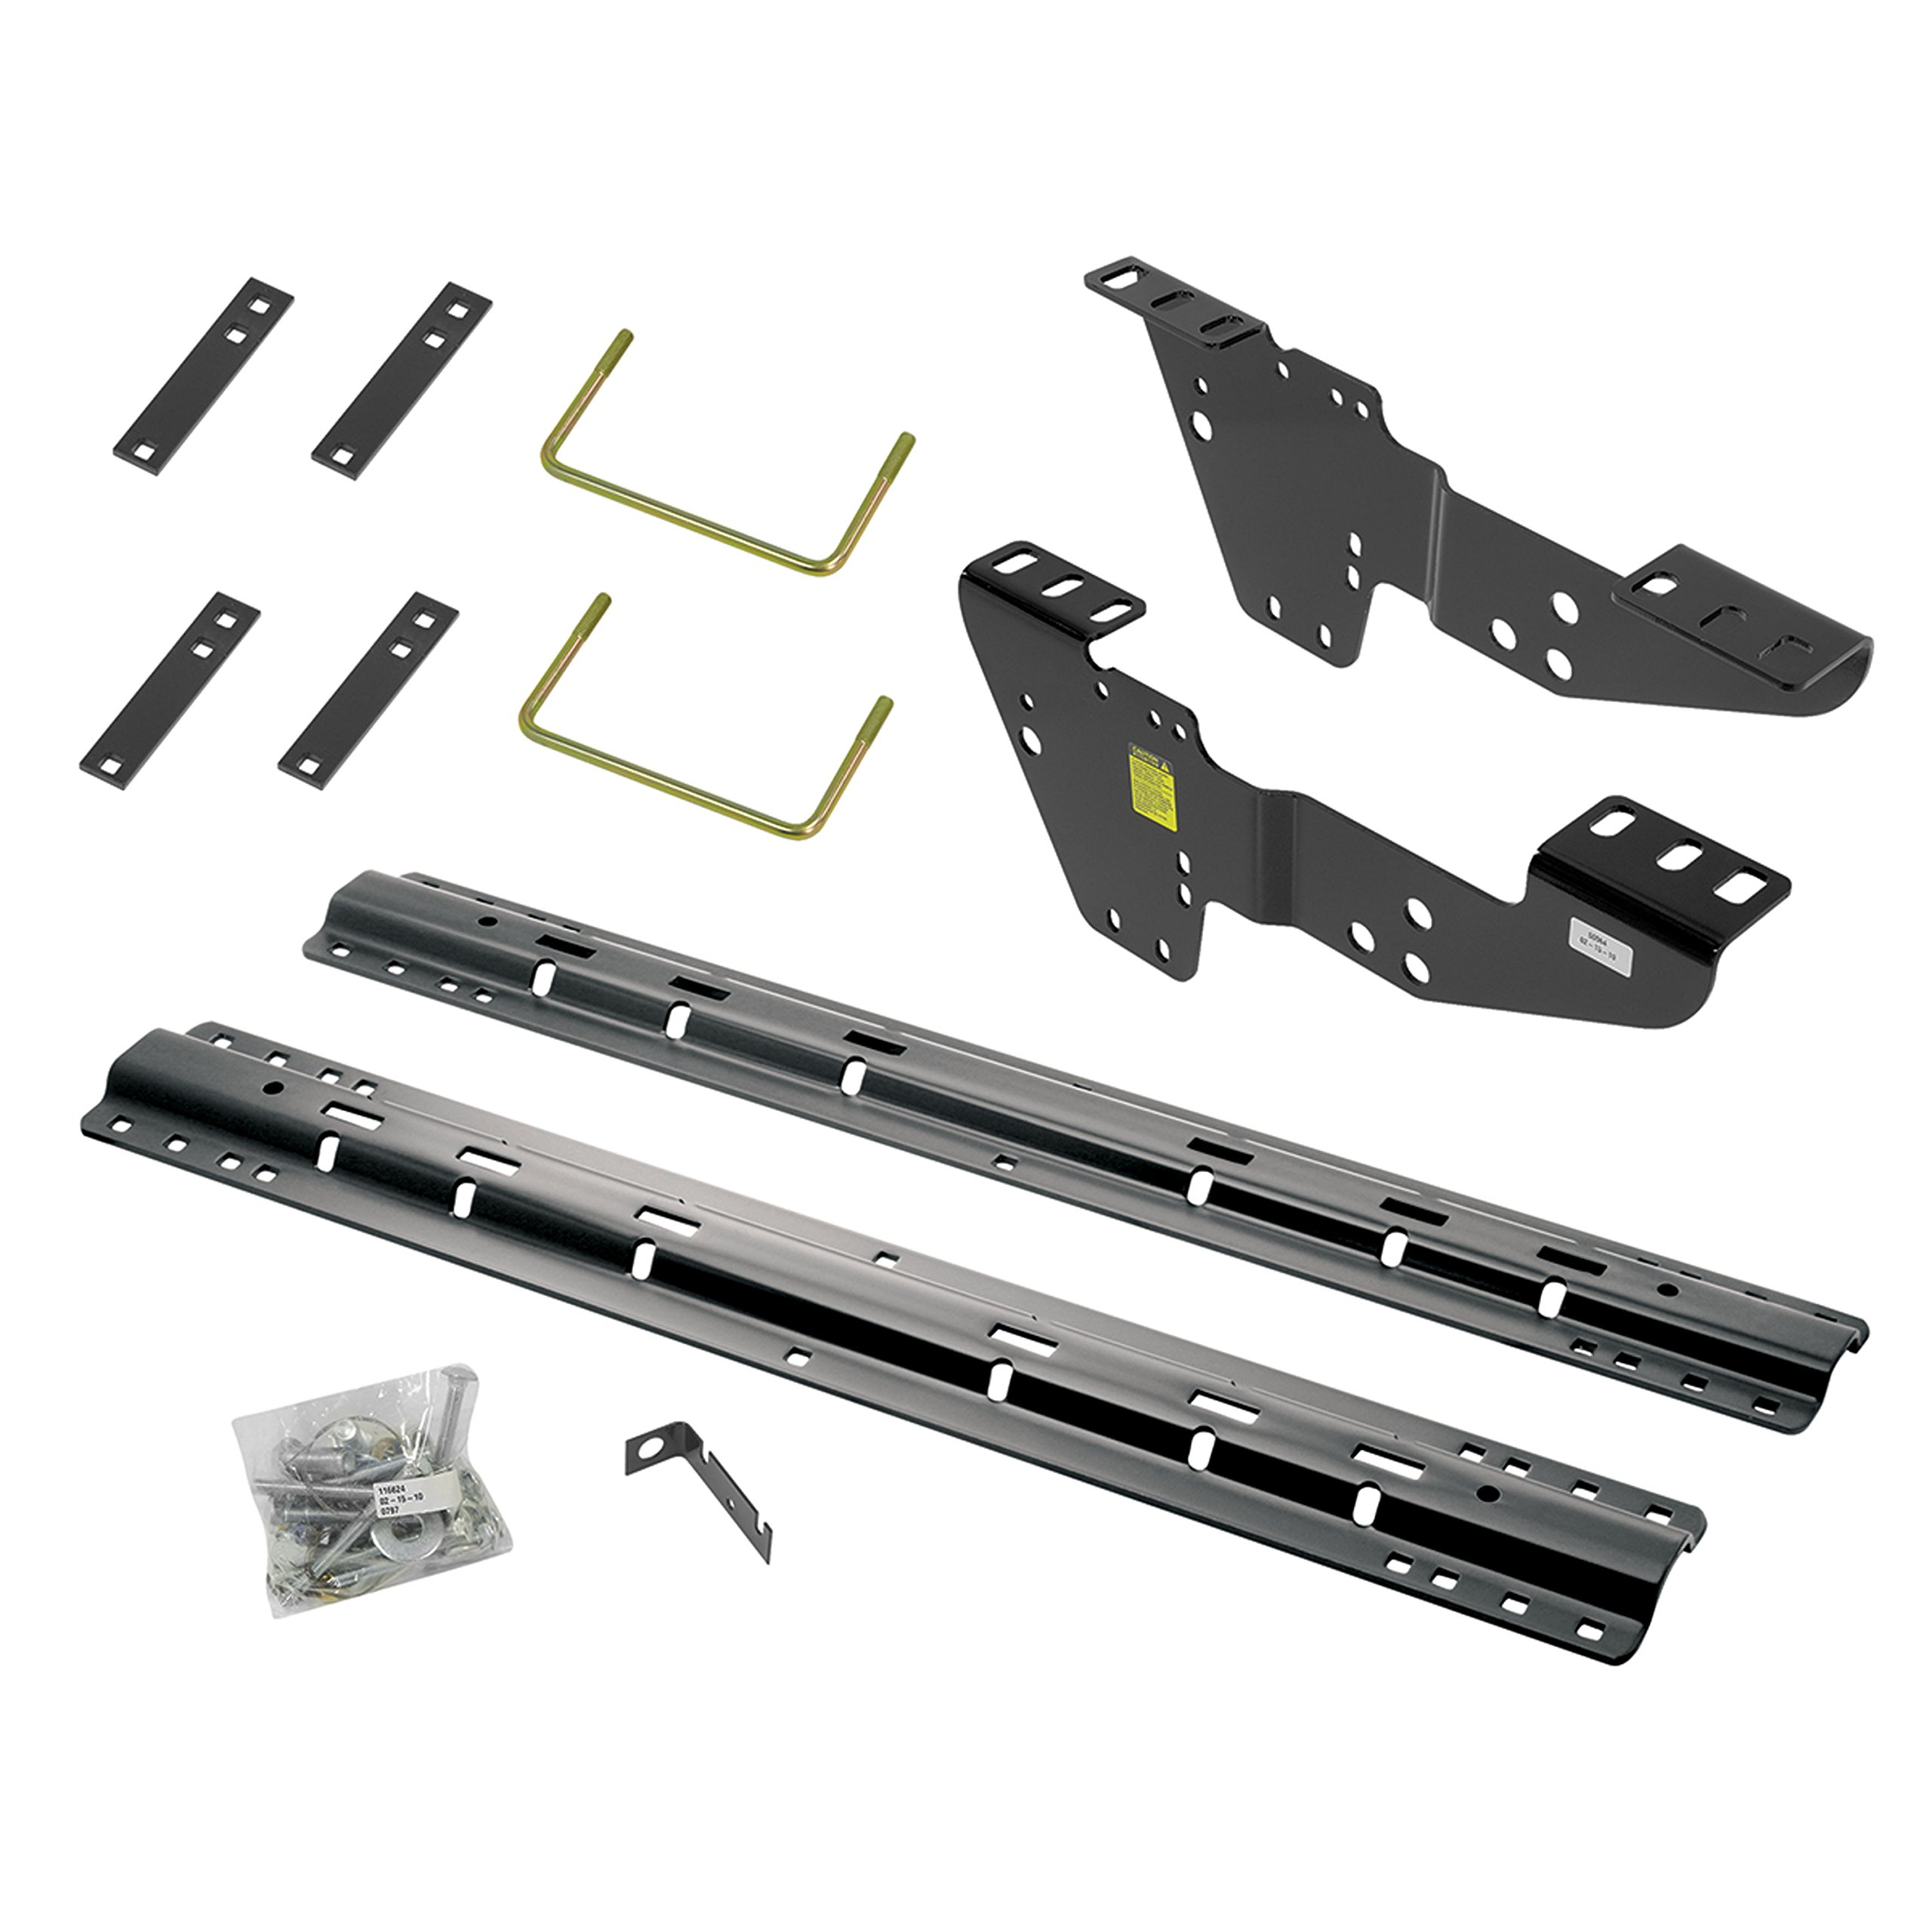 Reese 0225.0451 50064-58 Custom Fifth Wheel Brackets with 10-Bolt Rail Kit for Chevrolet, GMC, Silverado and Sierra by Reese